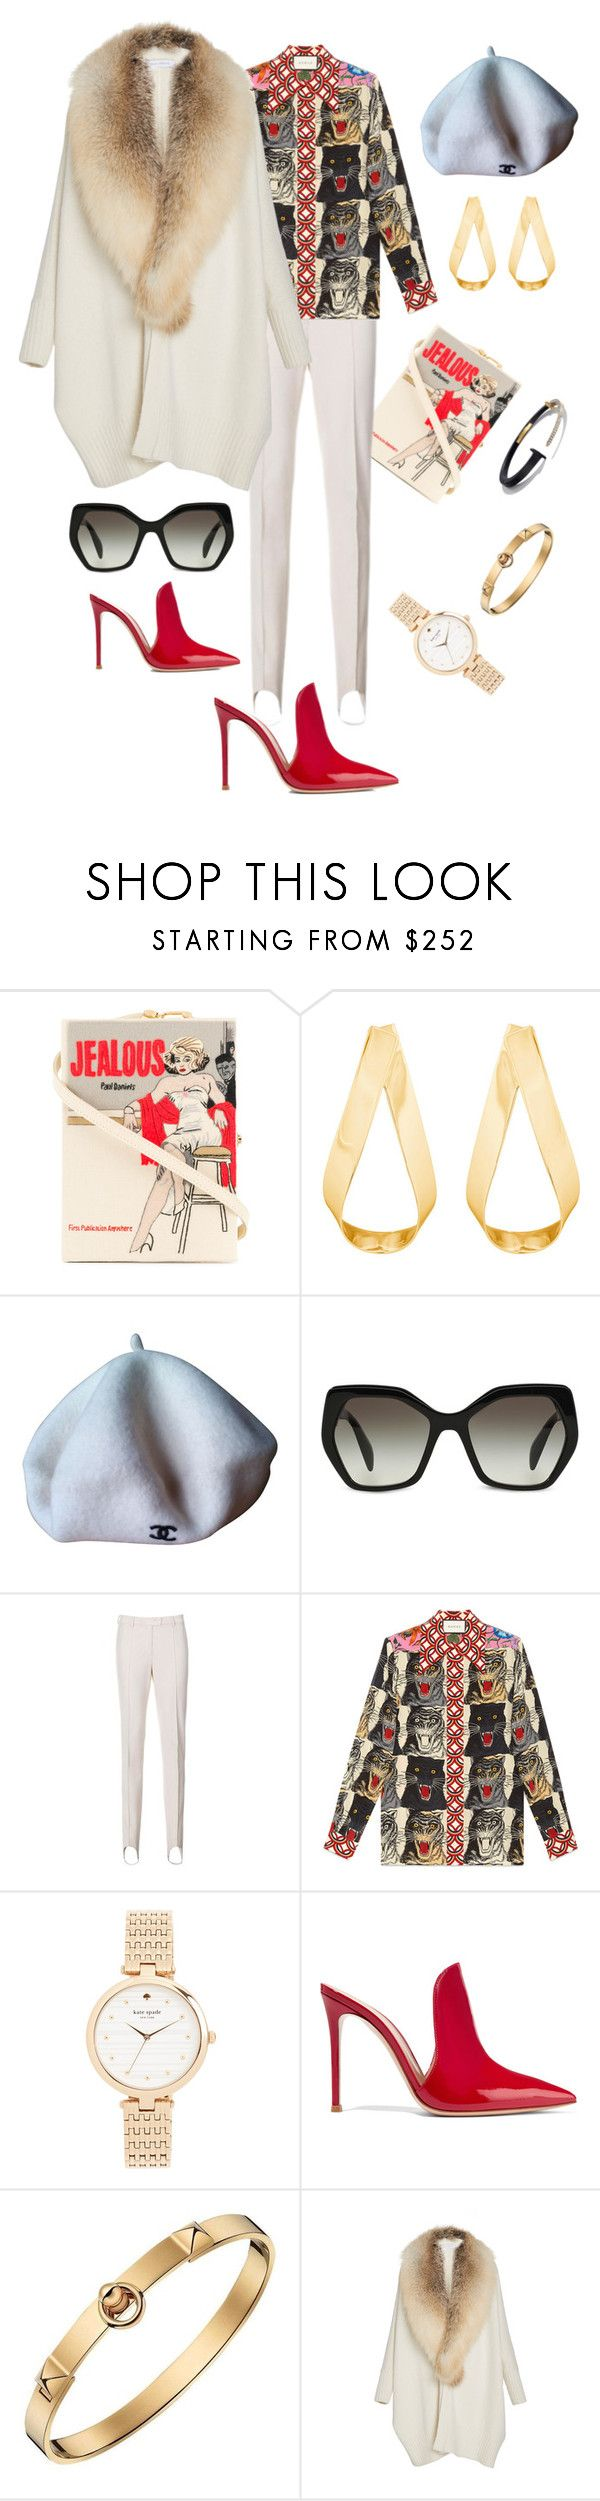 """Wednesday"" by svetlana-me ❤ liked on Polyvore featuring Olympia Le-Tan, Jennifer Fisher, Chanel, Prada, Gucci, Kate Spade, Gianvito Rossi, Hermès and Sally Lapointe"